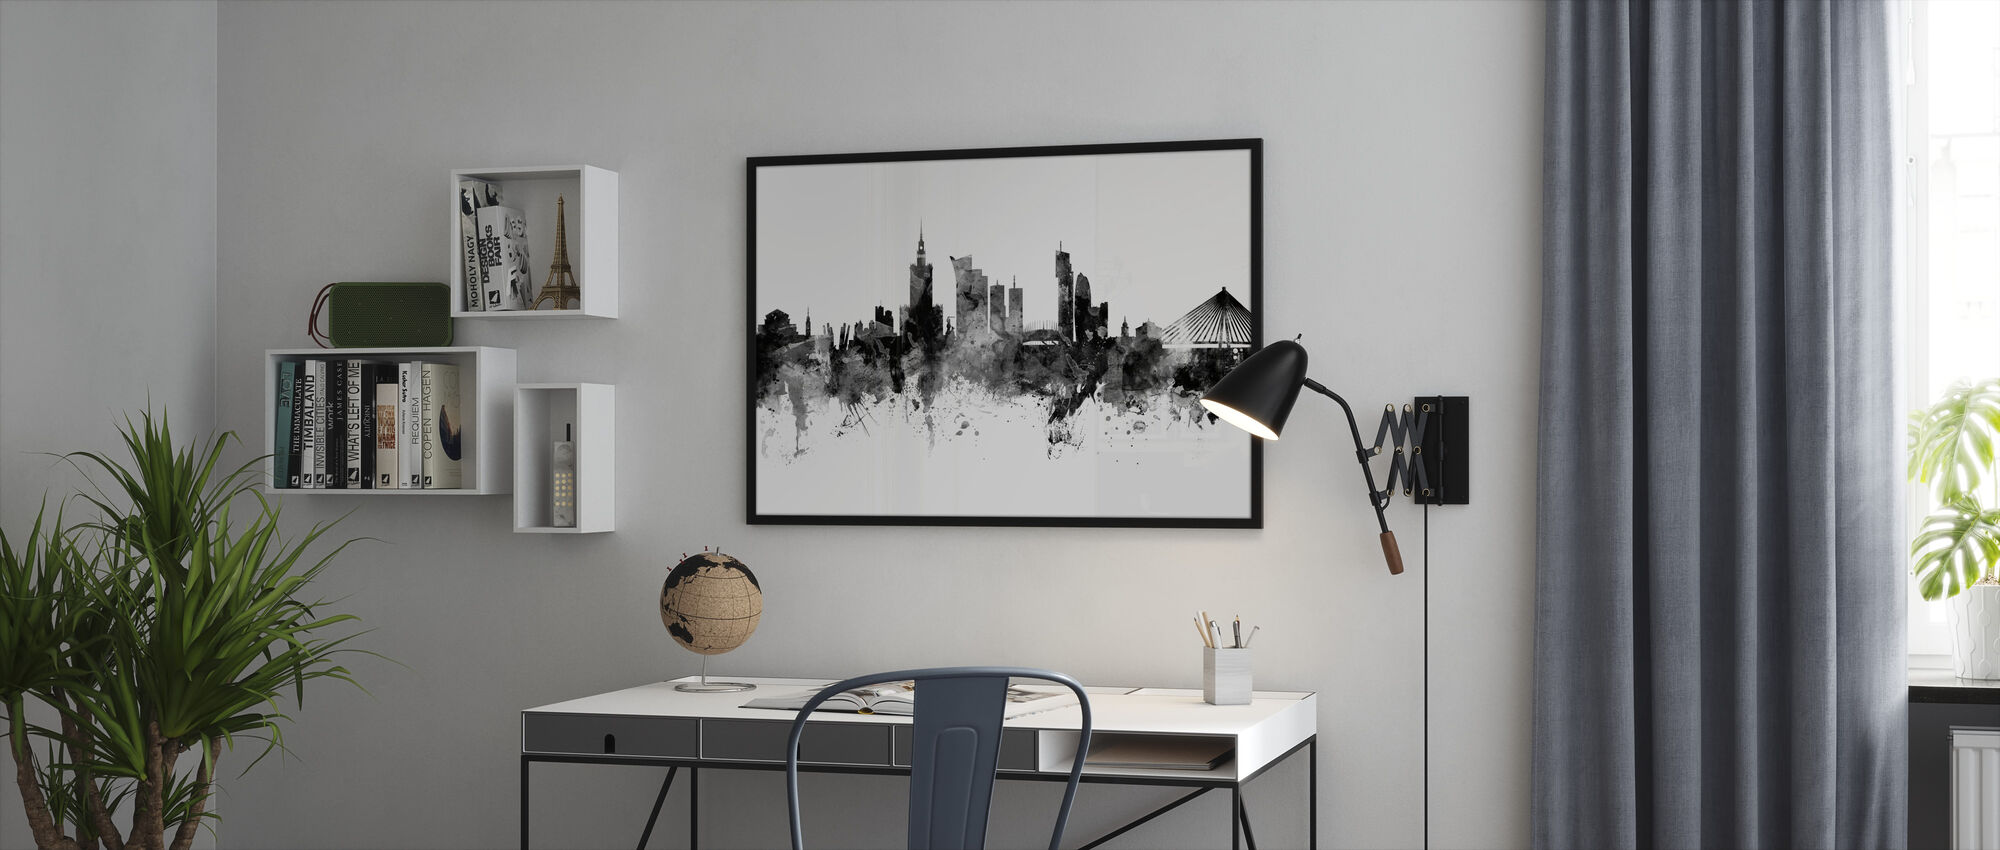 Warsaw Skyline, black and white - Framed print - Office